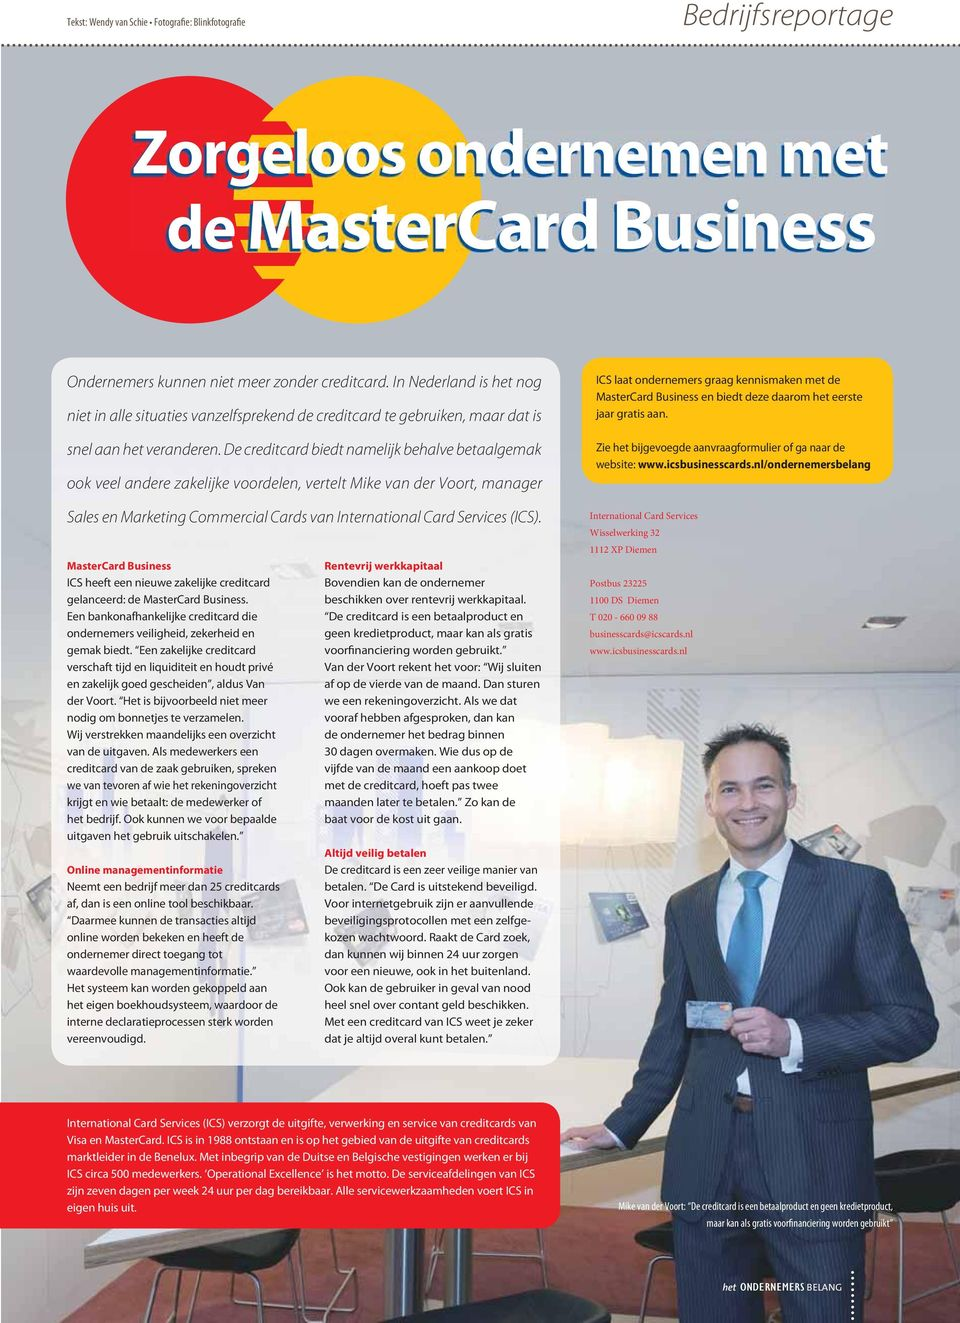 De creditcard biedt namelijk behalve betaalgemak ook veel andere zakelijke voordelen, vertelt Mike van der Voort, manager Sales en Marketing Commercial Cards van International Card Services (ICS).